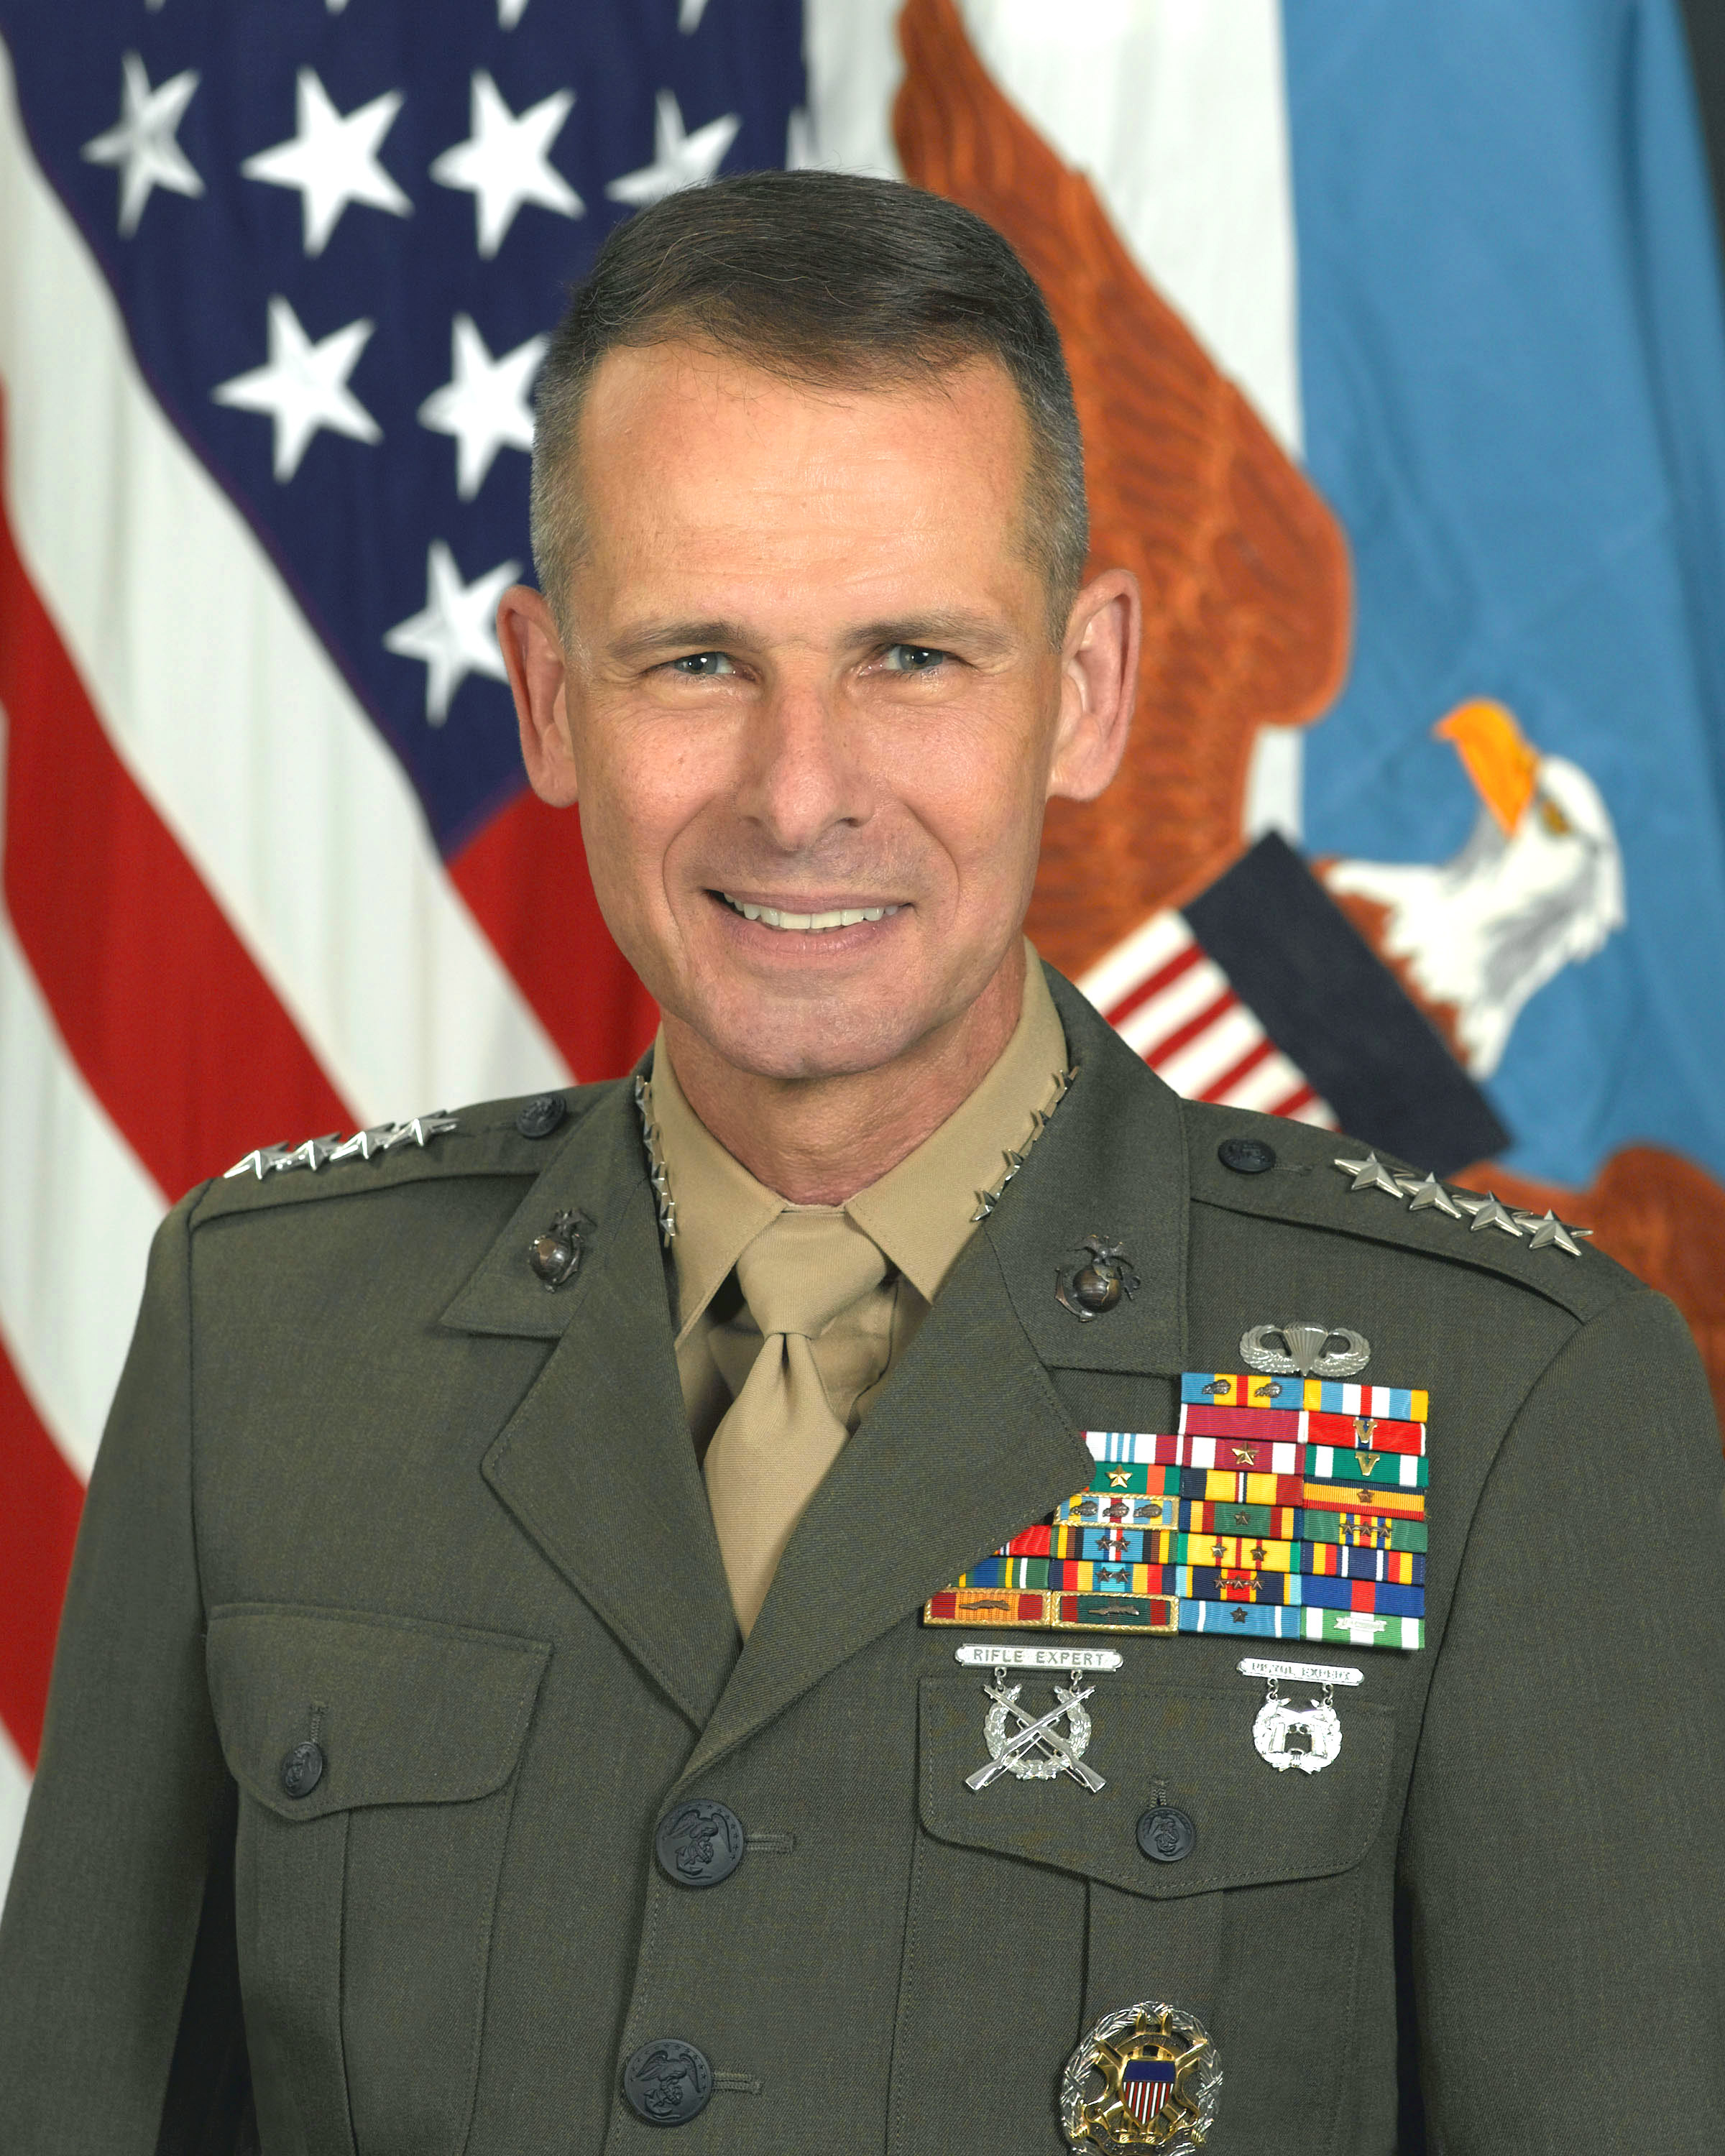 Chairman of the joint chiefs of staff for Chair joint chiefs of staff